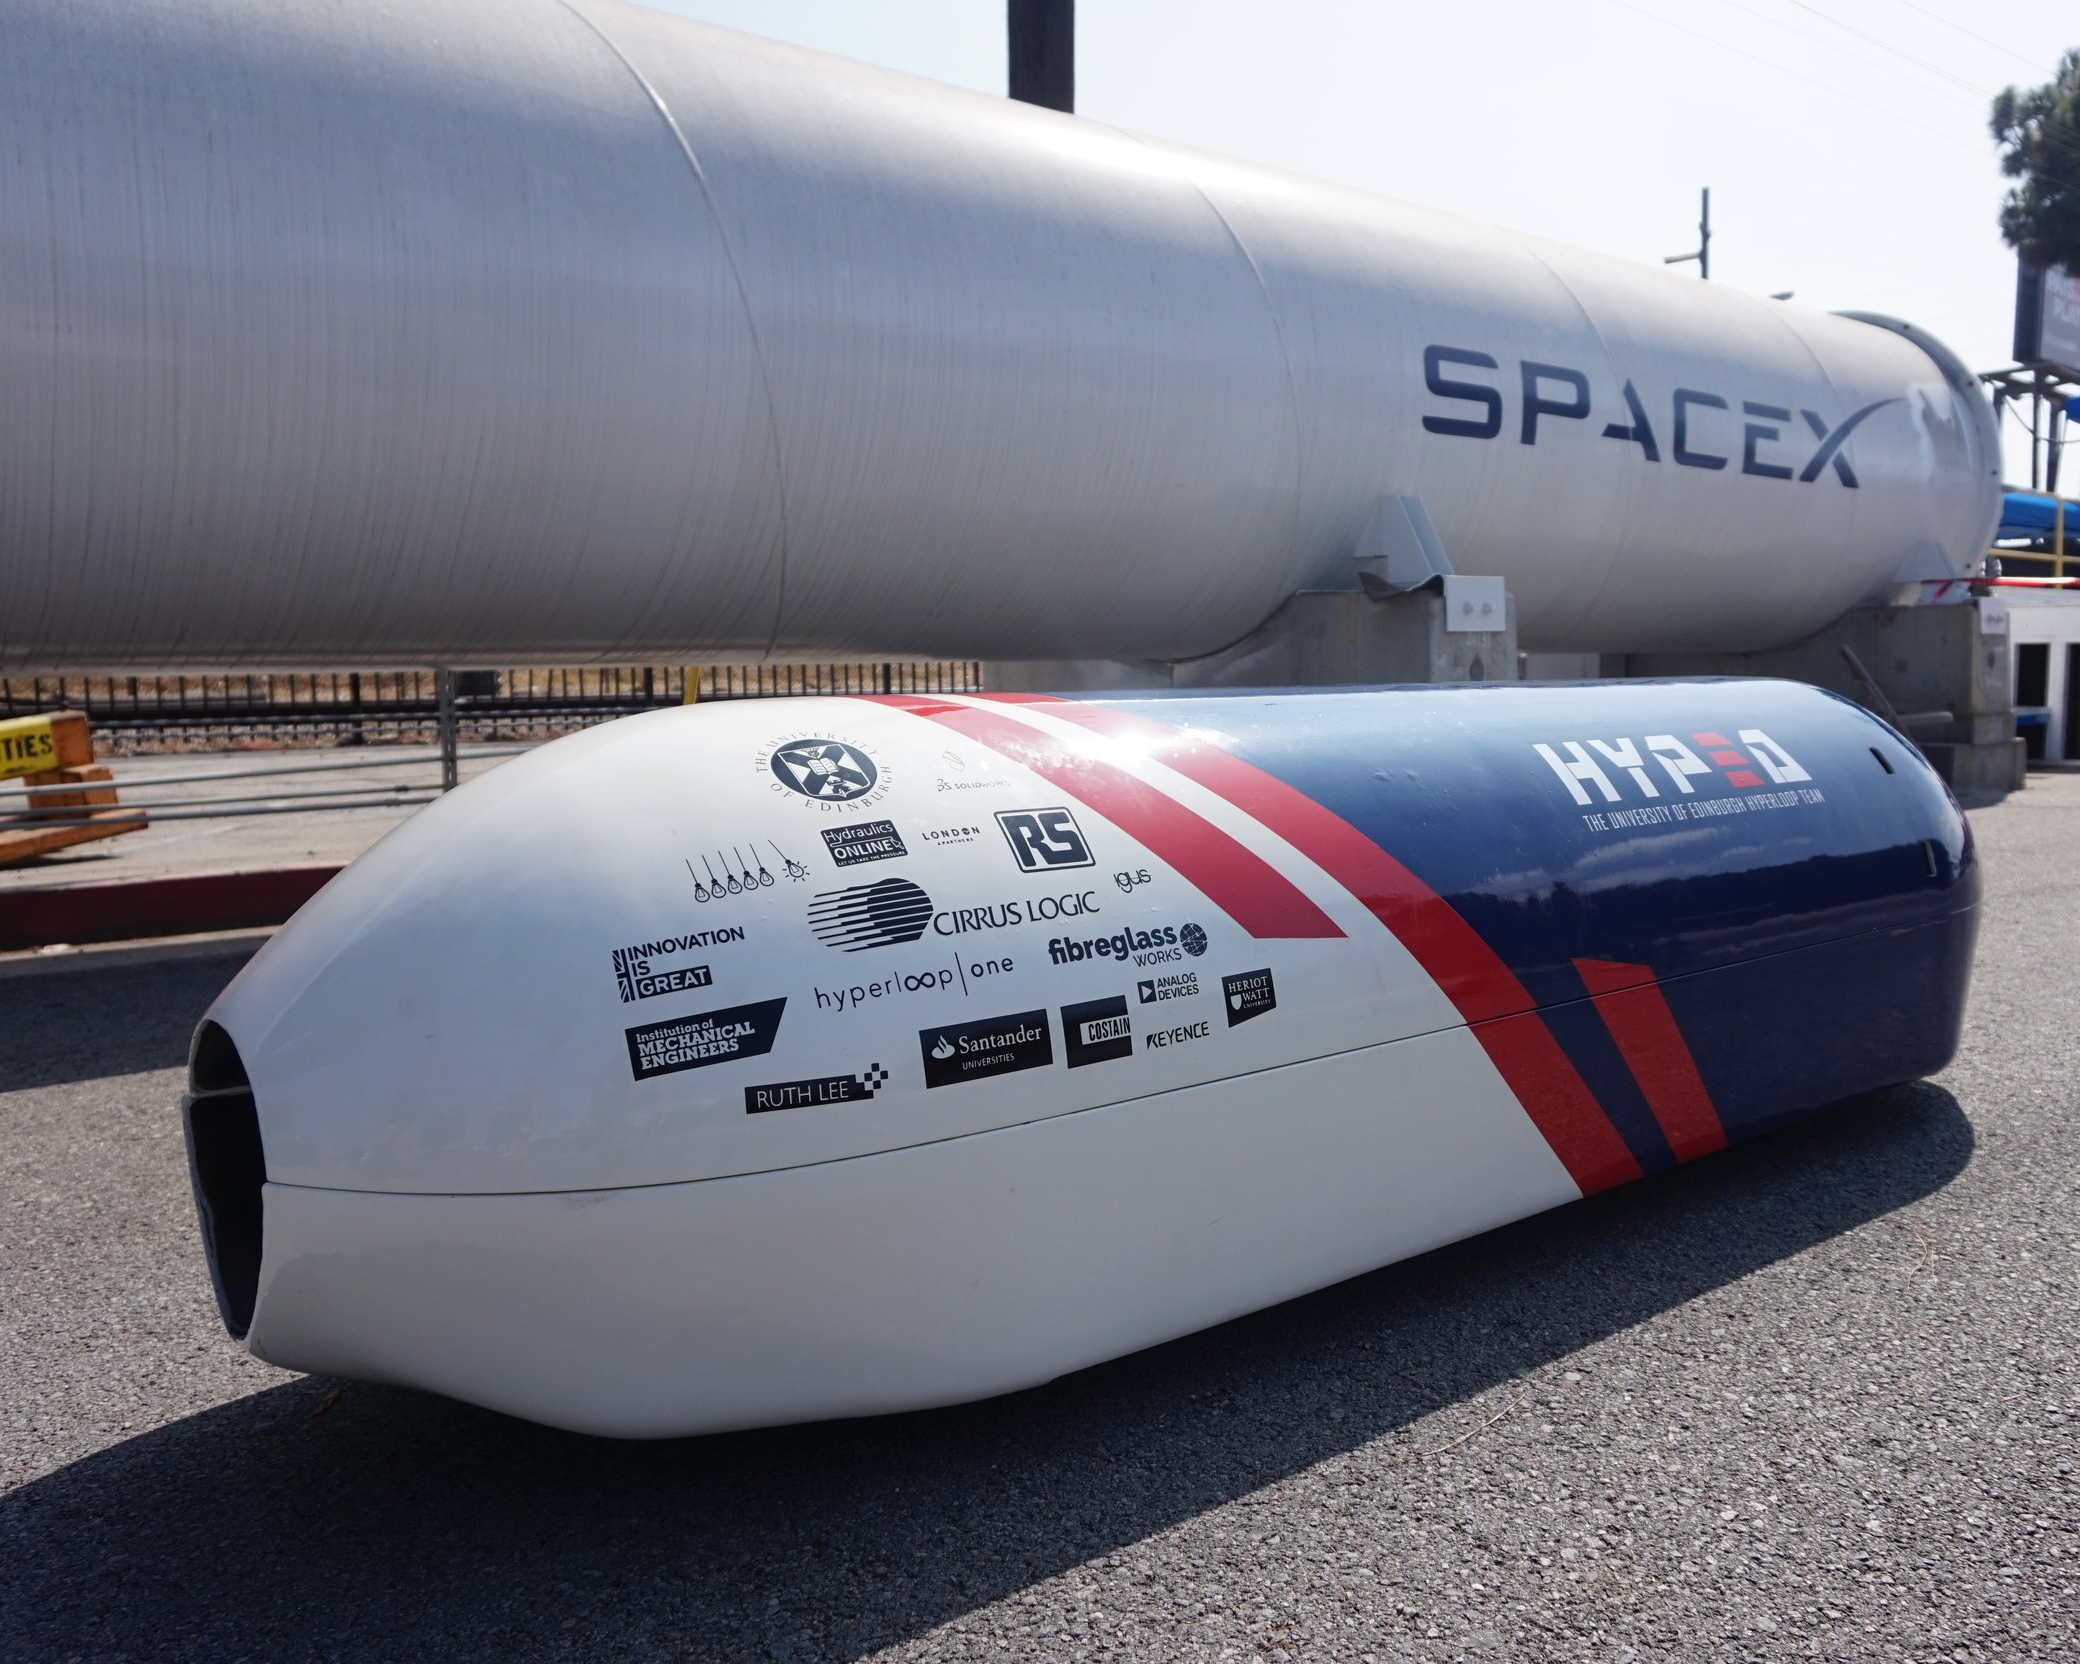 - Elon Musk, an engineer, businessman and inventor, came up with the idea of the hyperloop. It describes a capsule or pod, big enough to carry passengers, that travels through a tube. The tube has most of its air removed, leading to a near-vacuum inside, which means the pod can travel at extremely high speeds, as fast as an airplane. This could mean that a route, which would take you 4 hours by train, would take 30 minutes by hyperloop.